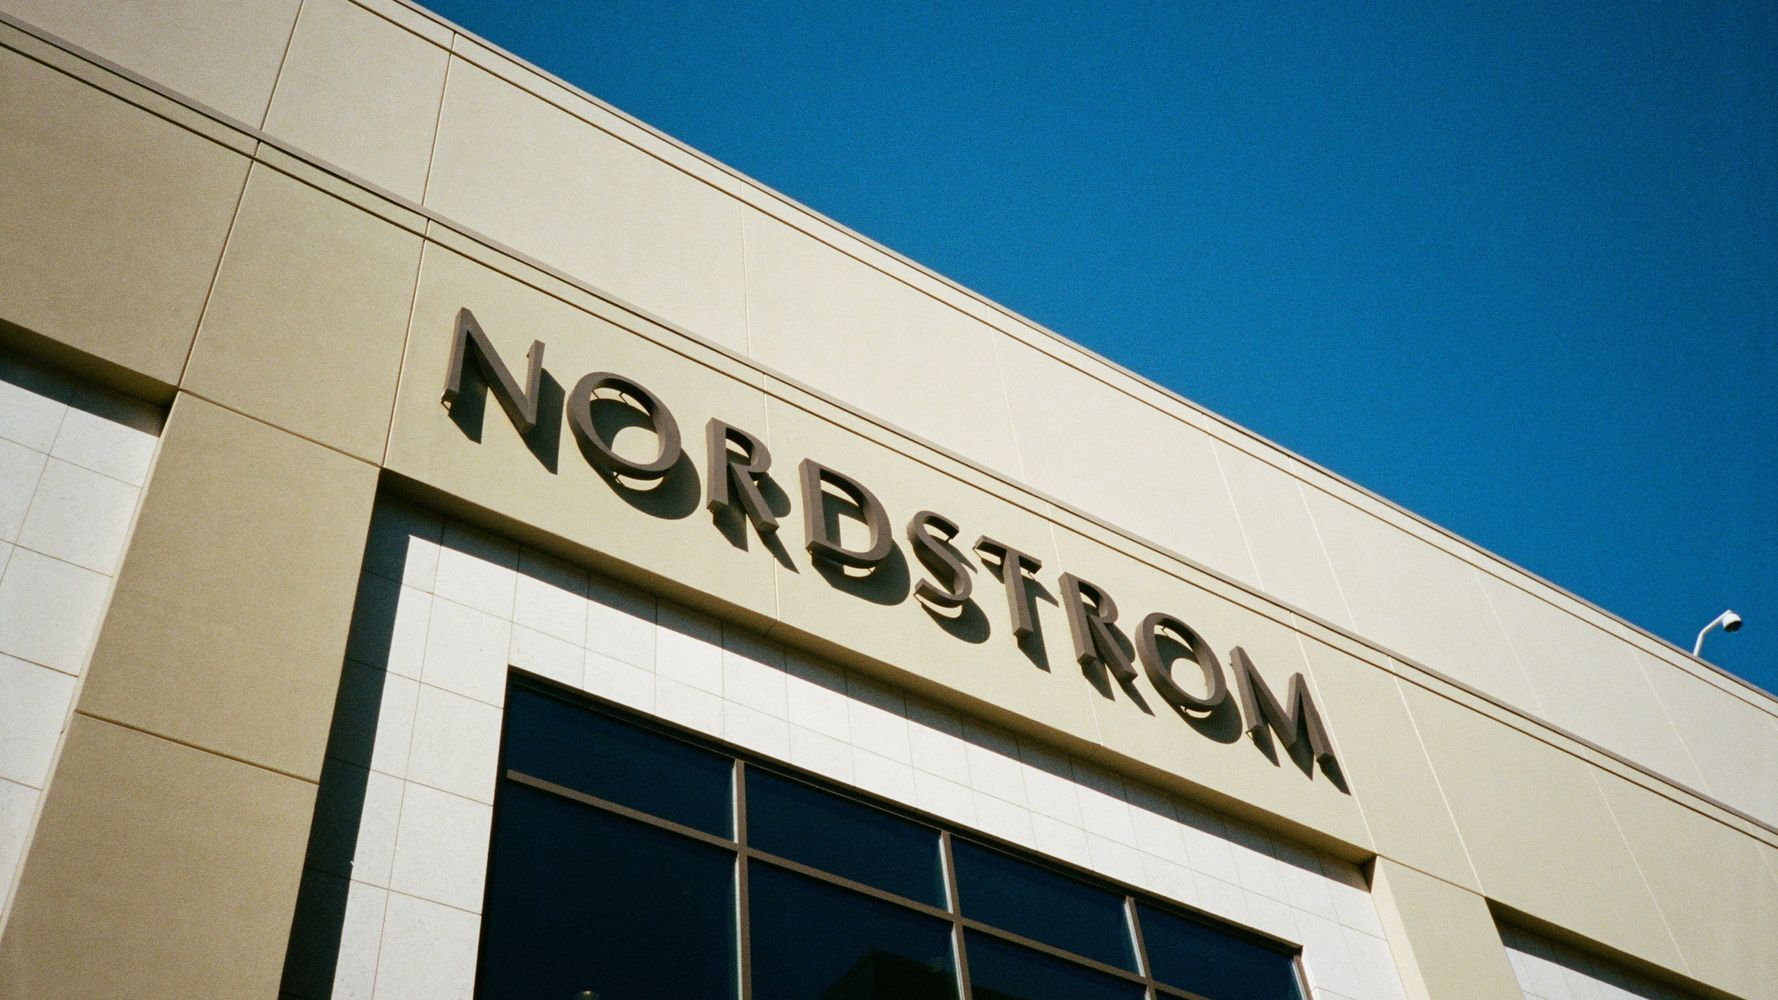 Stores Similar To Nordstrom To Find Designer Clothes For Cheap